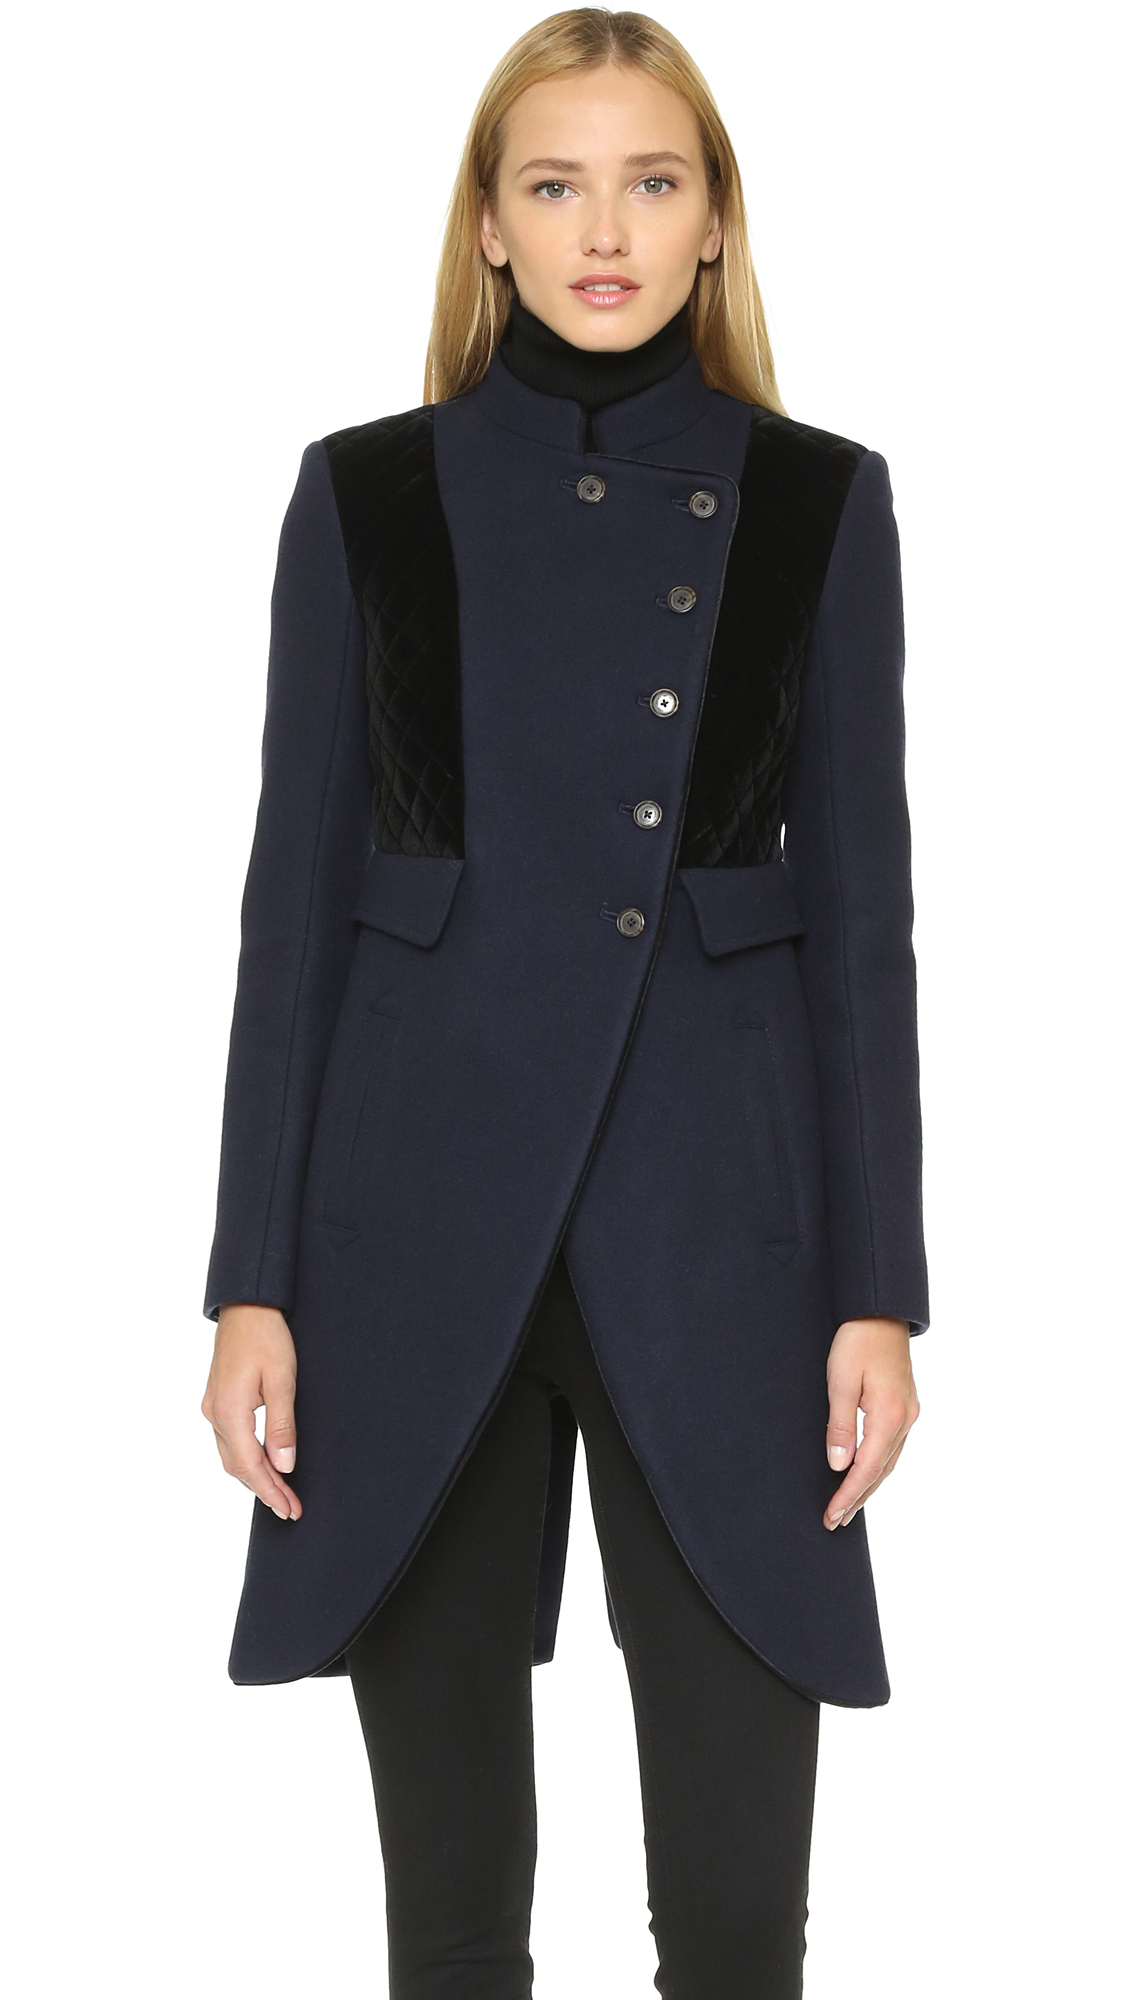 Marc by marc jacobs Norman Bonded Wool Coat - General Navy in Blue ...